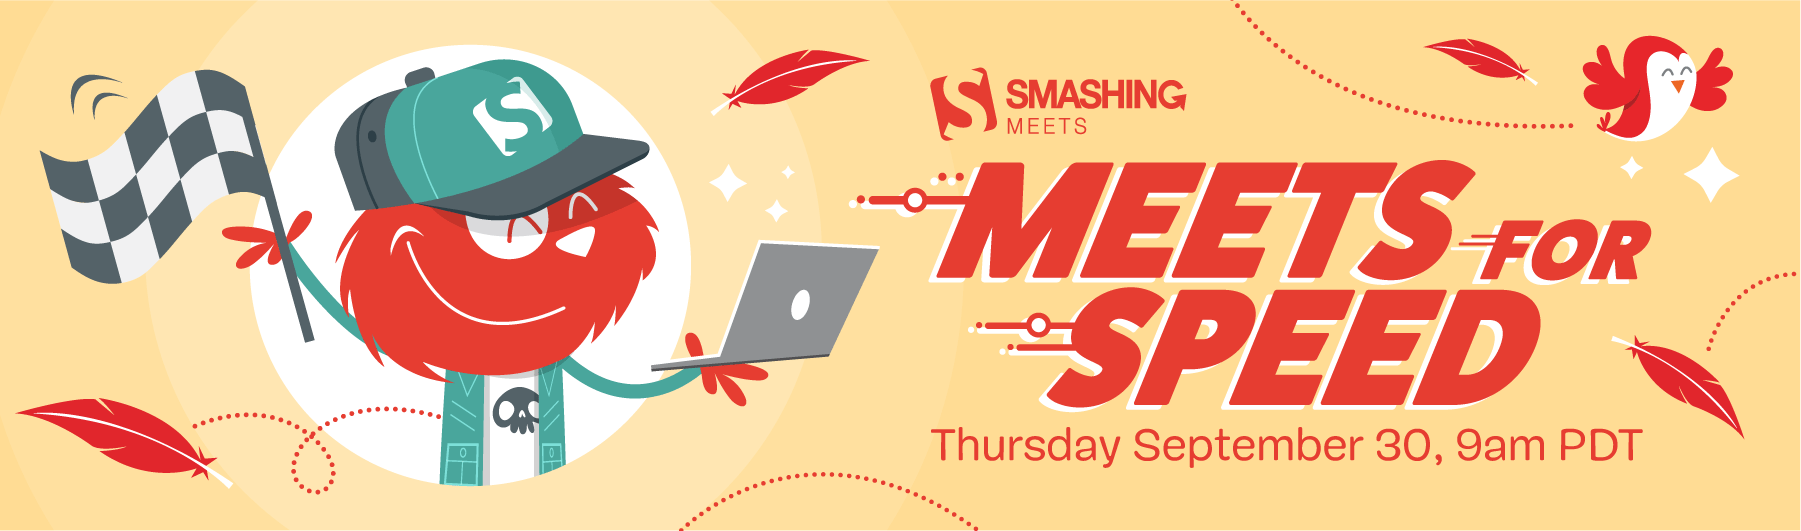 Smashing Meets — Meets for Speed